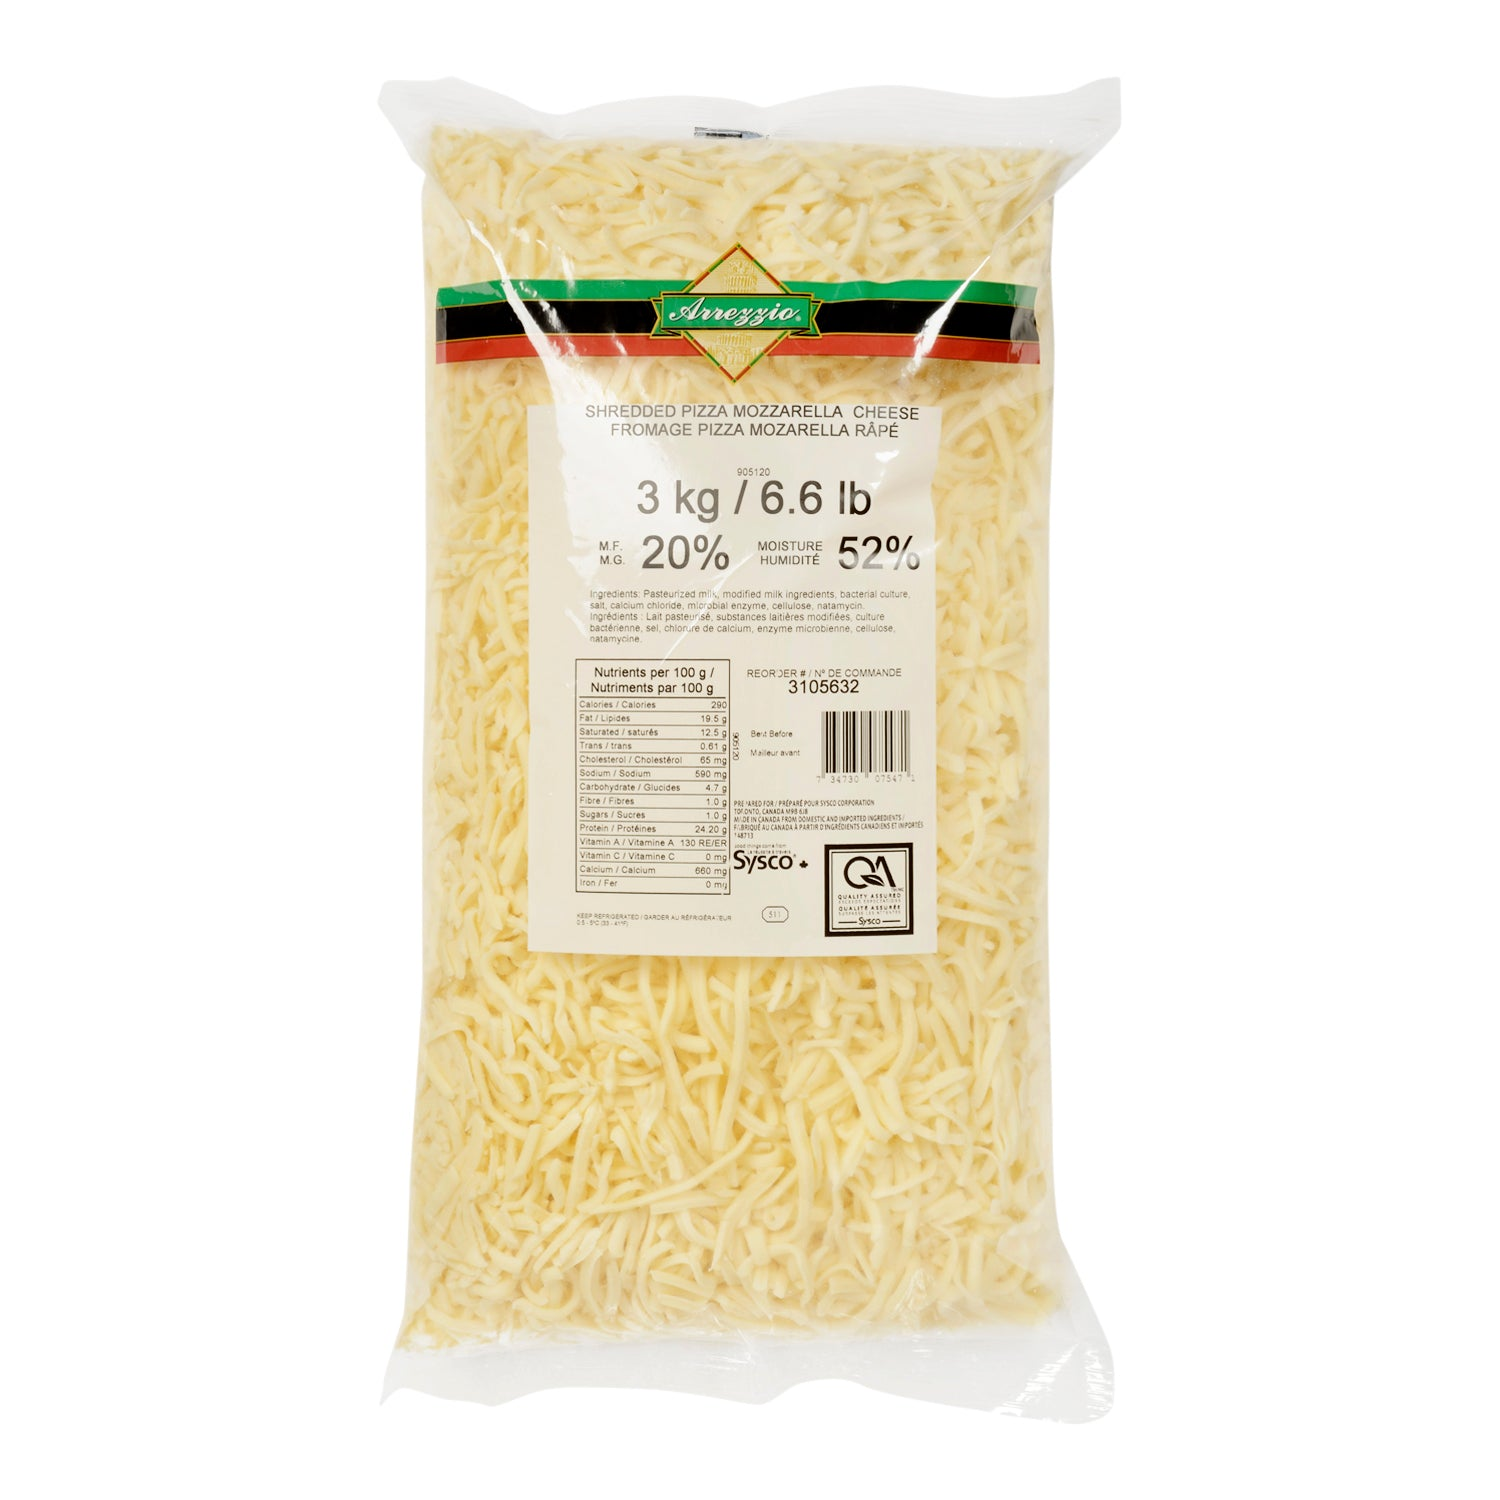 Arrezzio Shredded Pizza Mozzarella Cheese 20% M.F. 3 kg - 2 Pack [$13.83/kg]